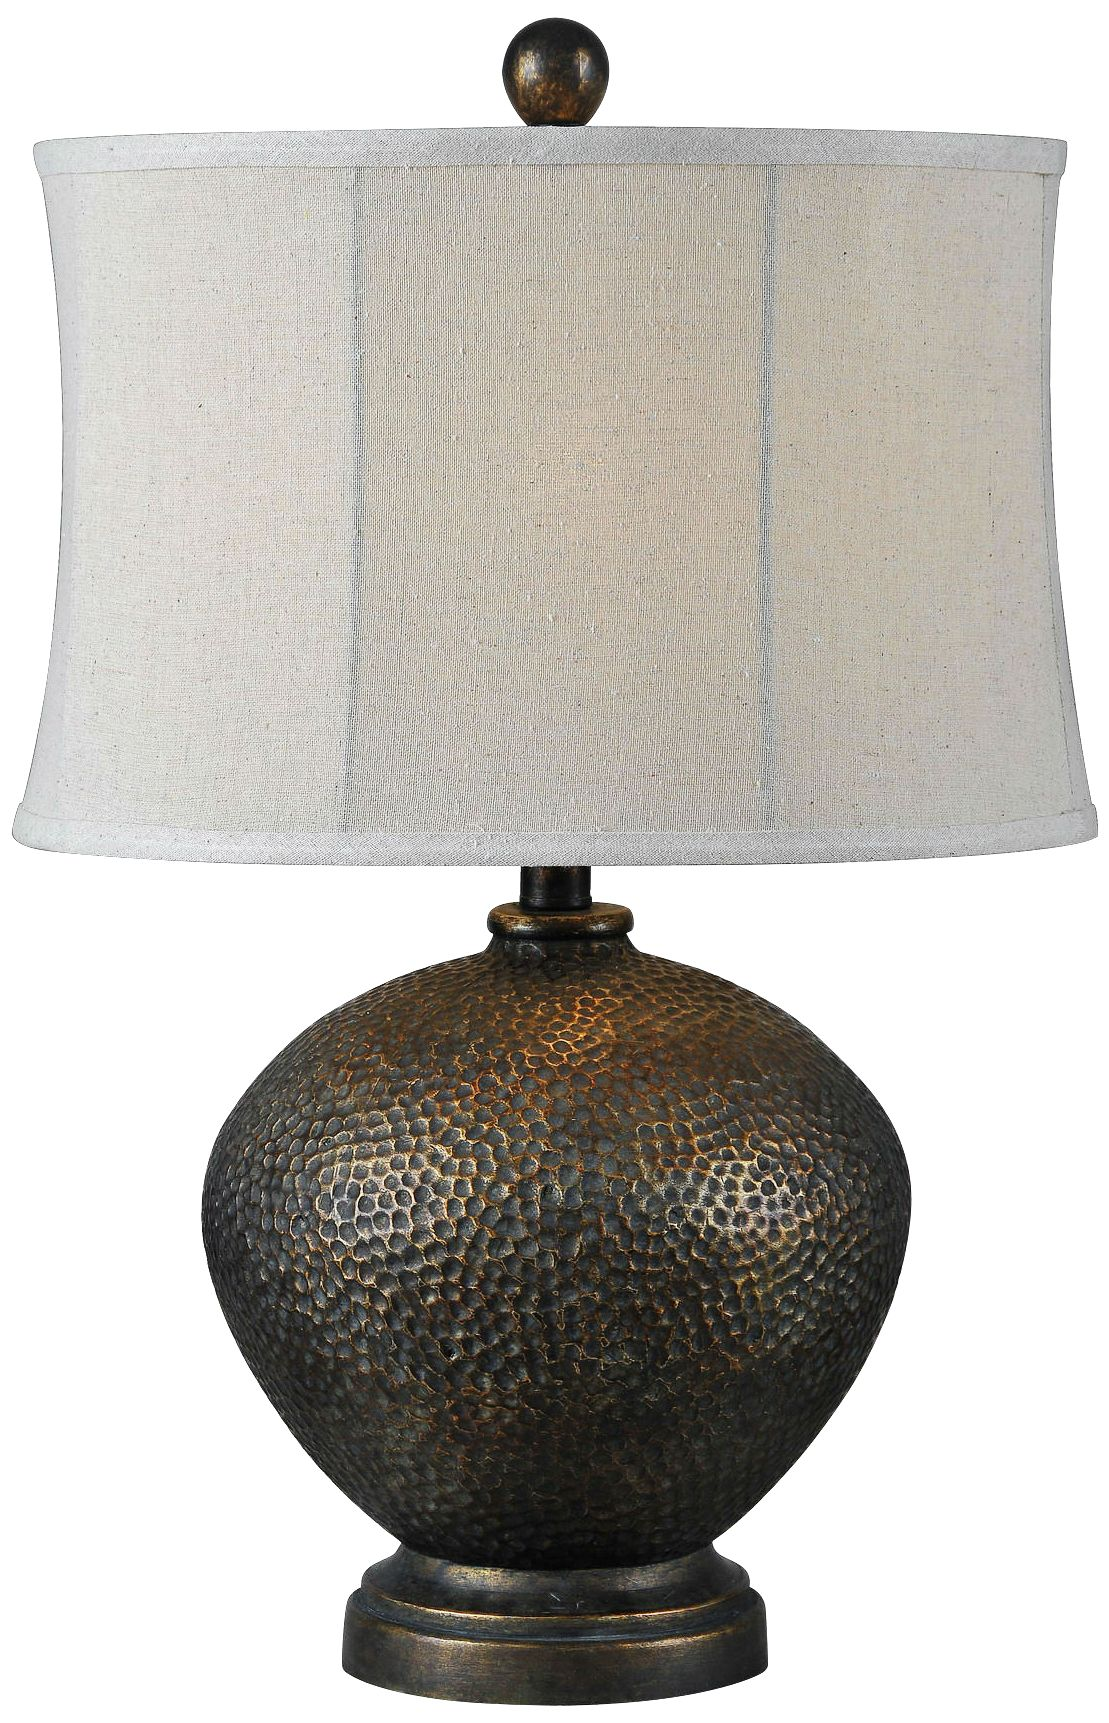 Merveilleux Miller Oil Rubbed Bronze Hammered Table Lamp